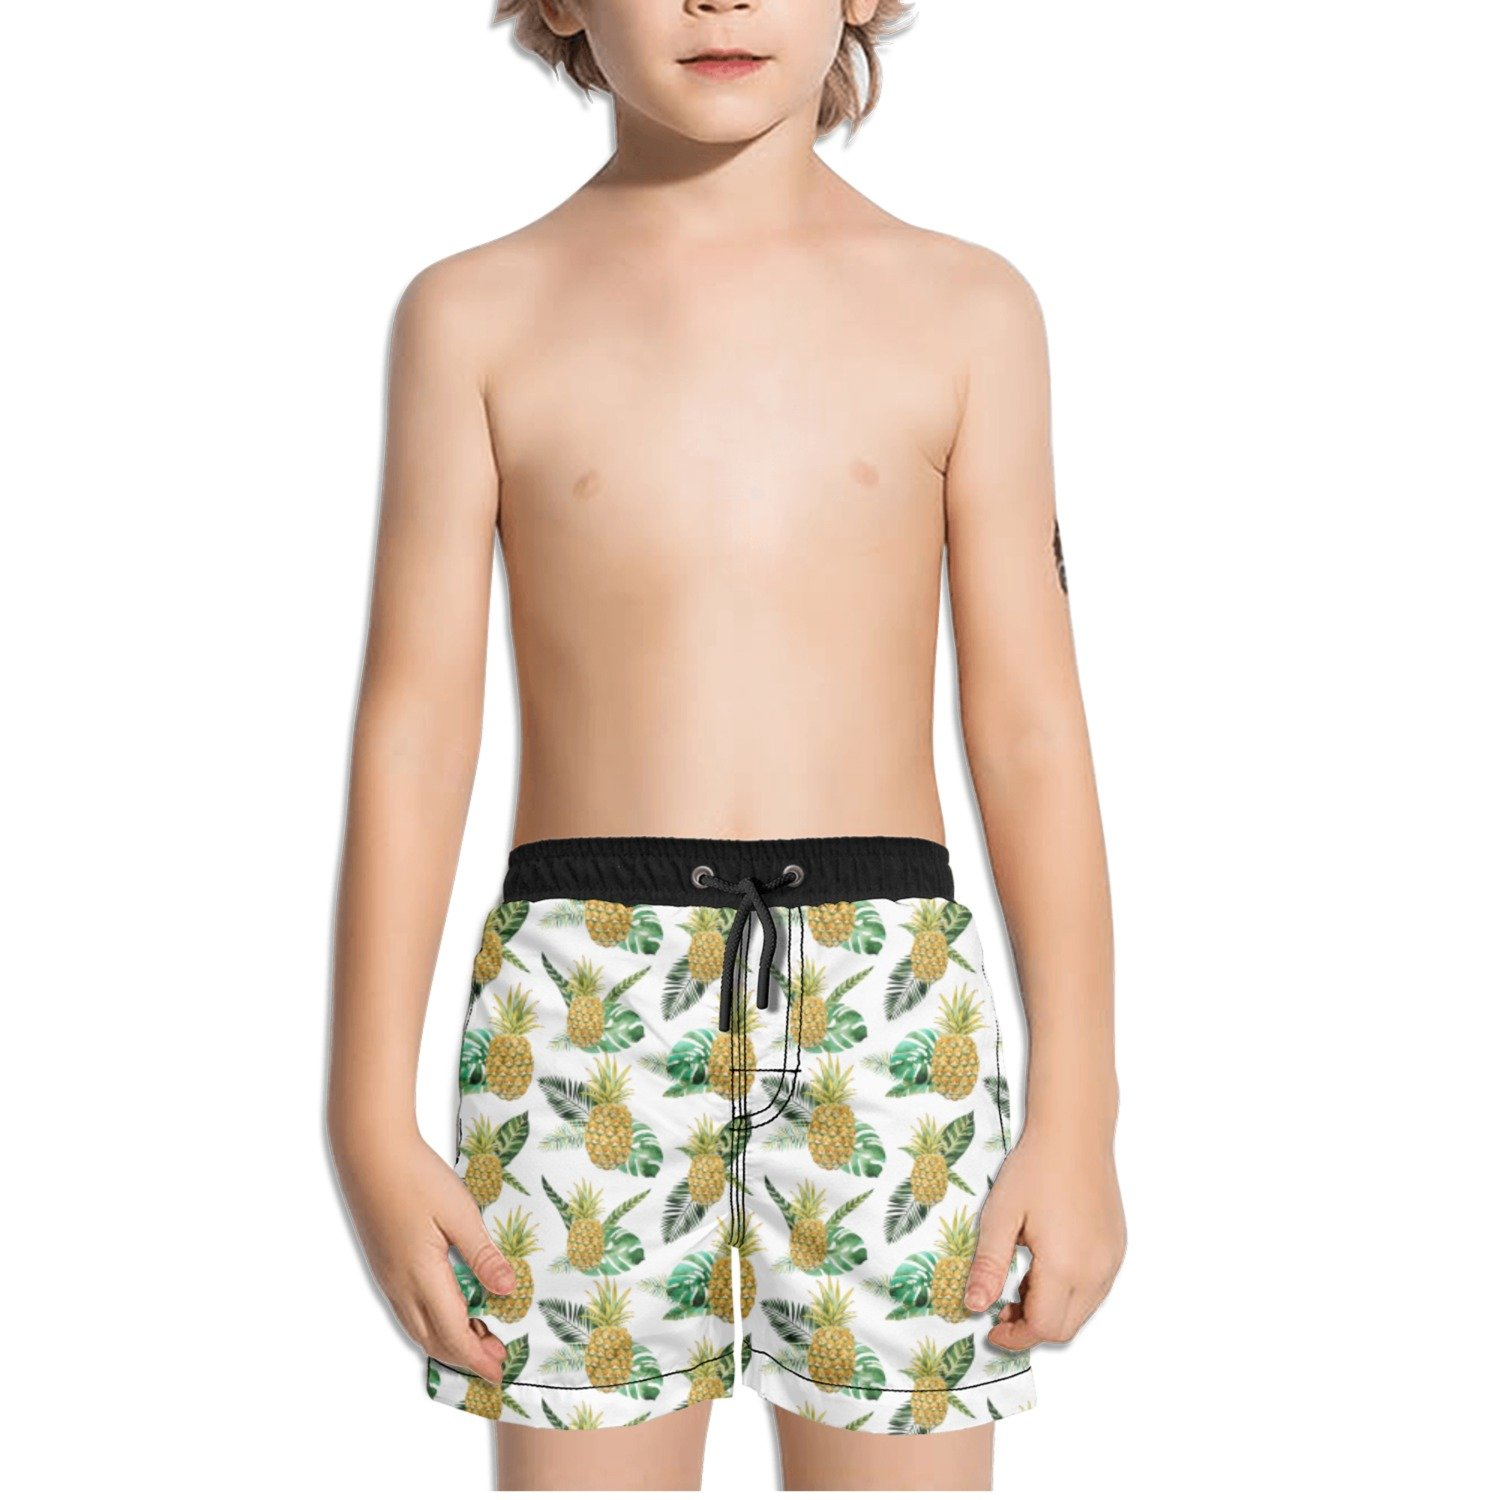 Trum Namii Boys Quick Dry Swim Trunks Golden Tropical Pineapple Shorts